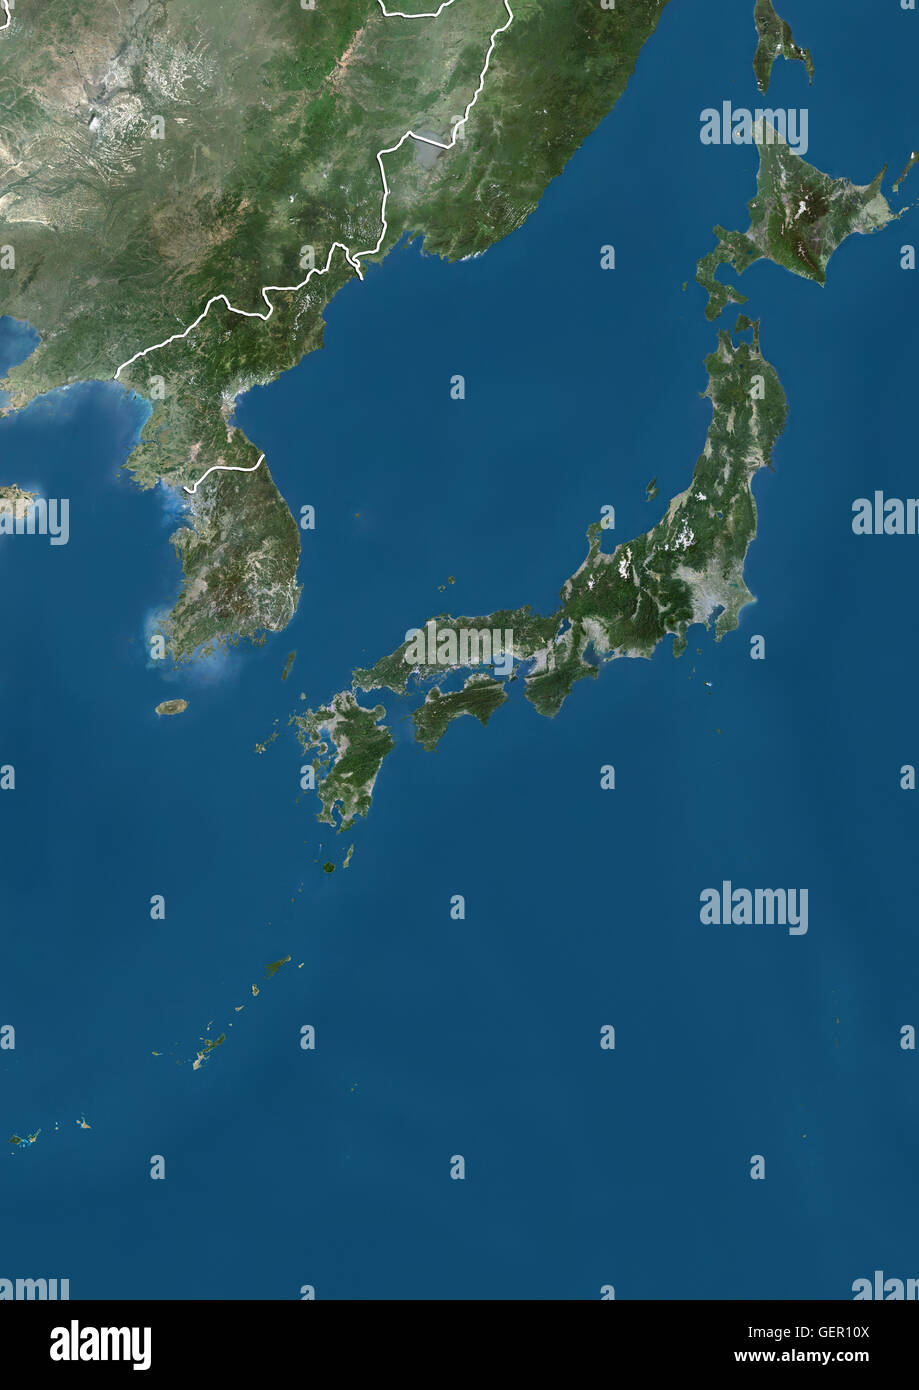 Satellite View Of Japan South Korea And North Korea With Country - Japan map satellite